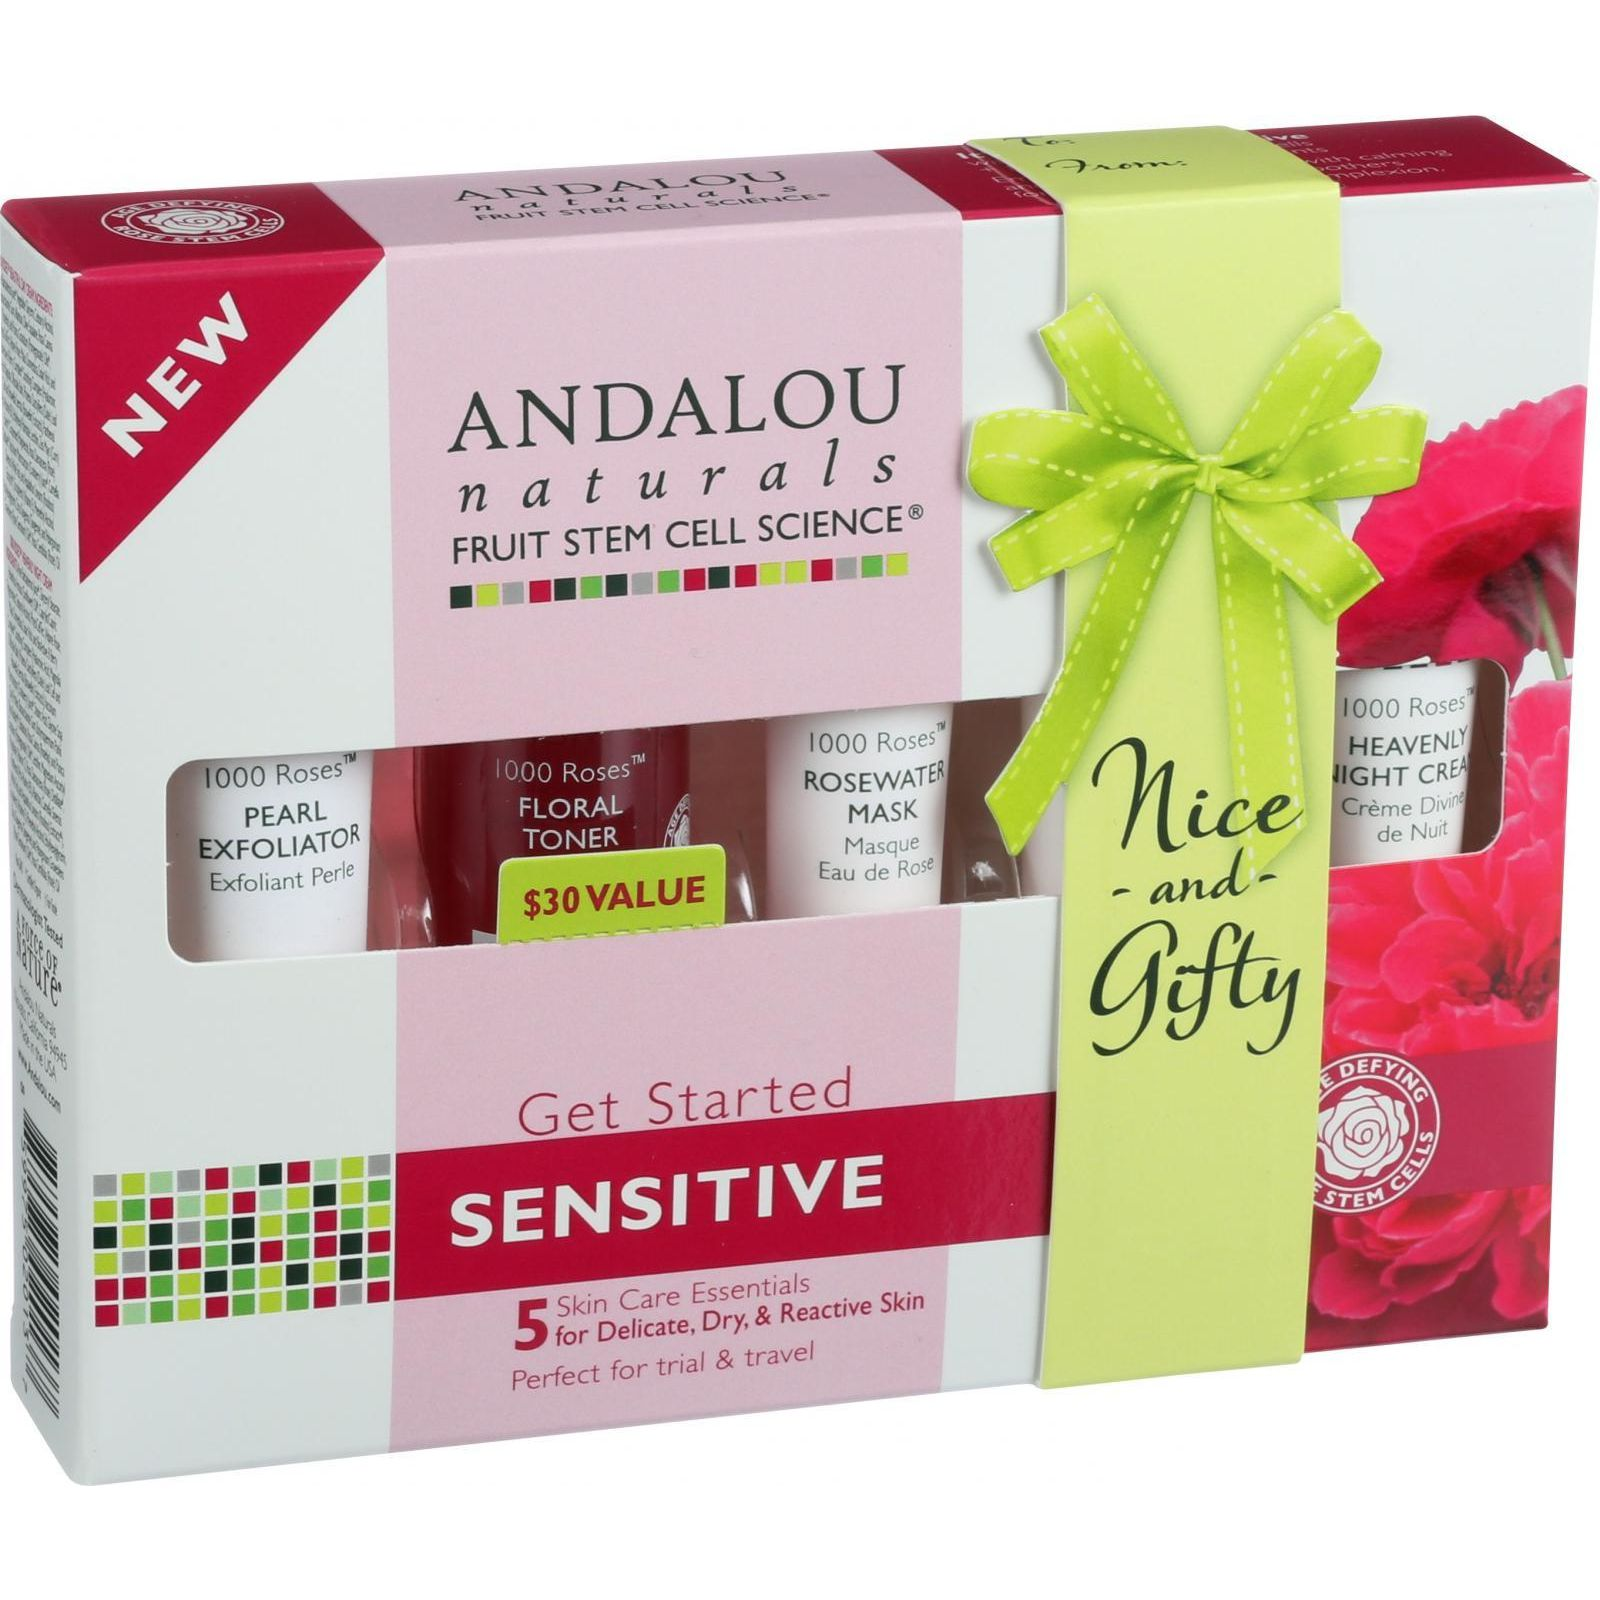 Andalou Naturals Get Started Kit  1000 Roses  5 Pieces